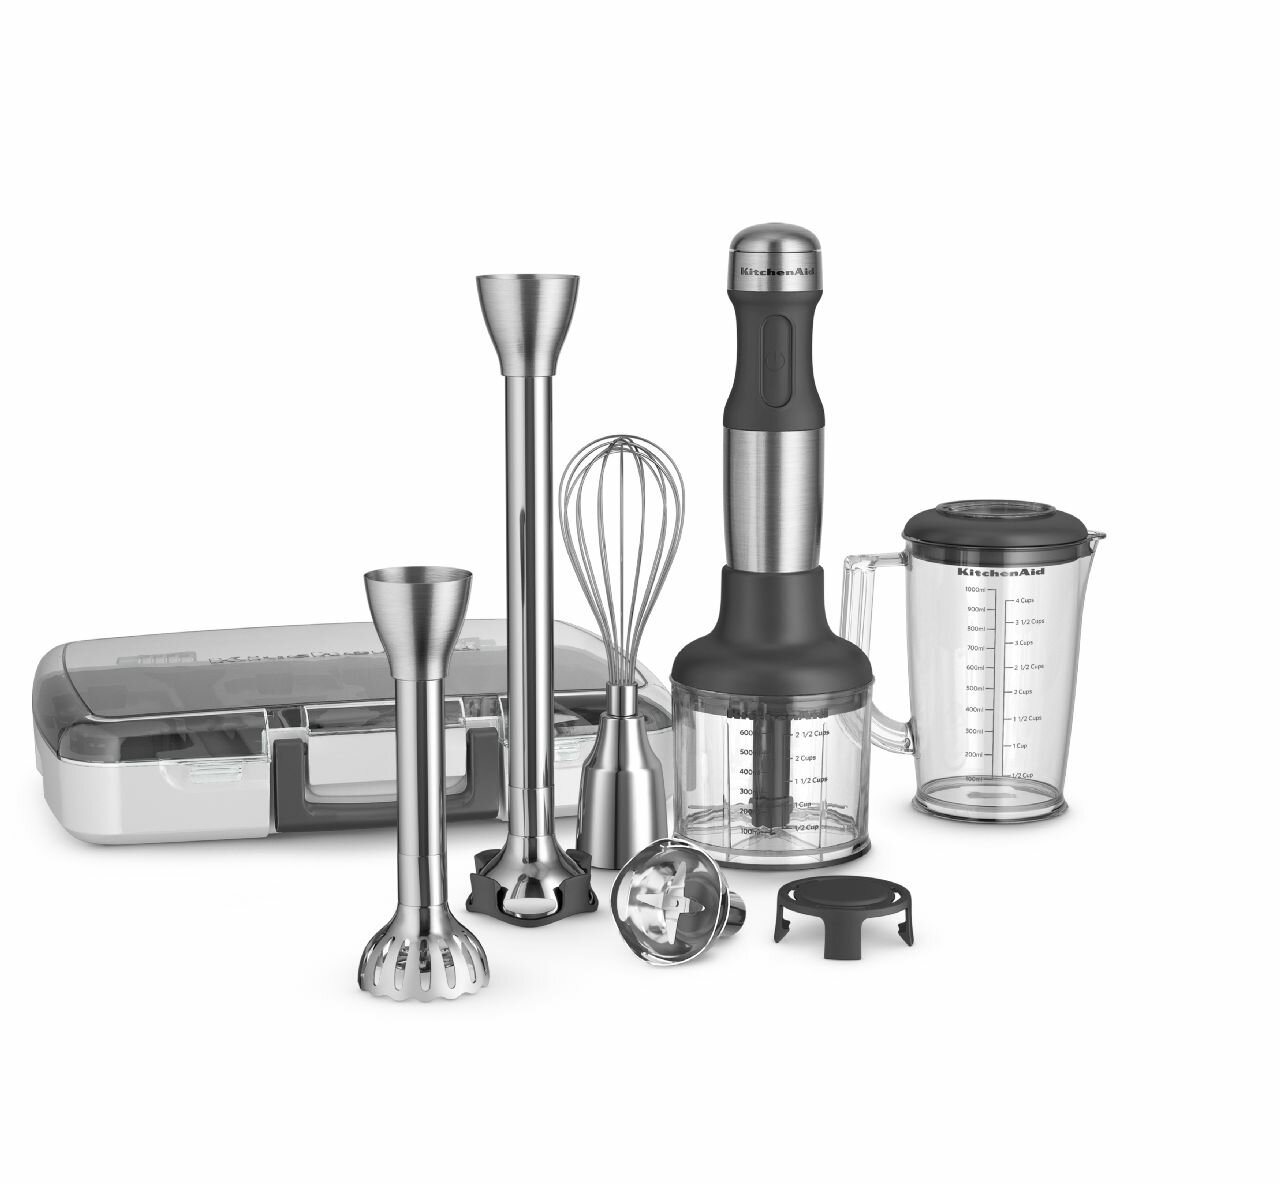 Kitchenaid Stainless Steel 5 Sd Immersion Blender With 2 Blending Arms Reviews Wayfair